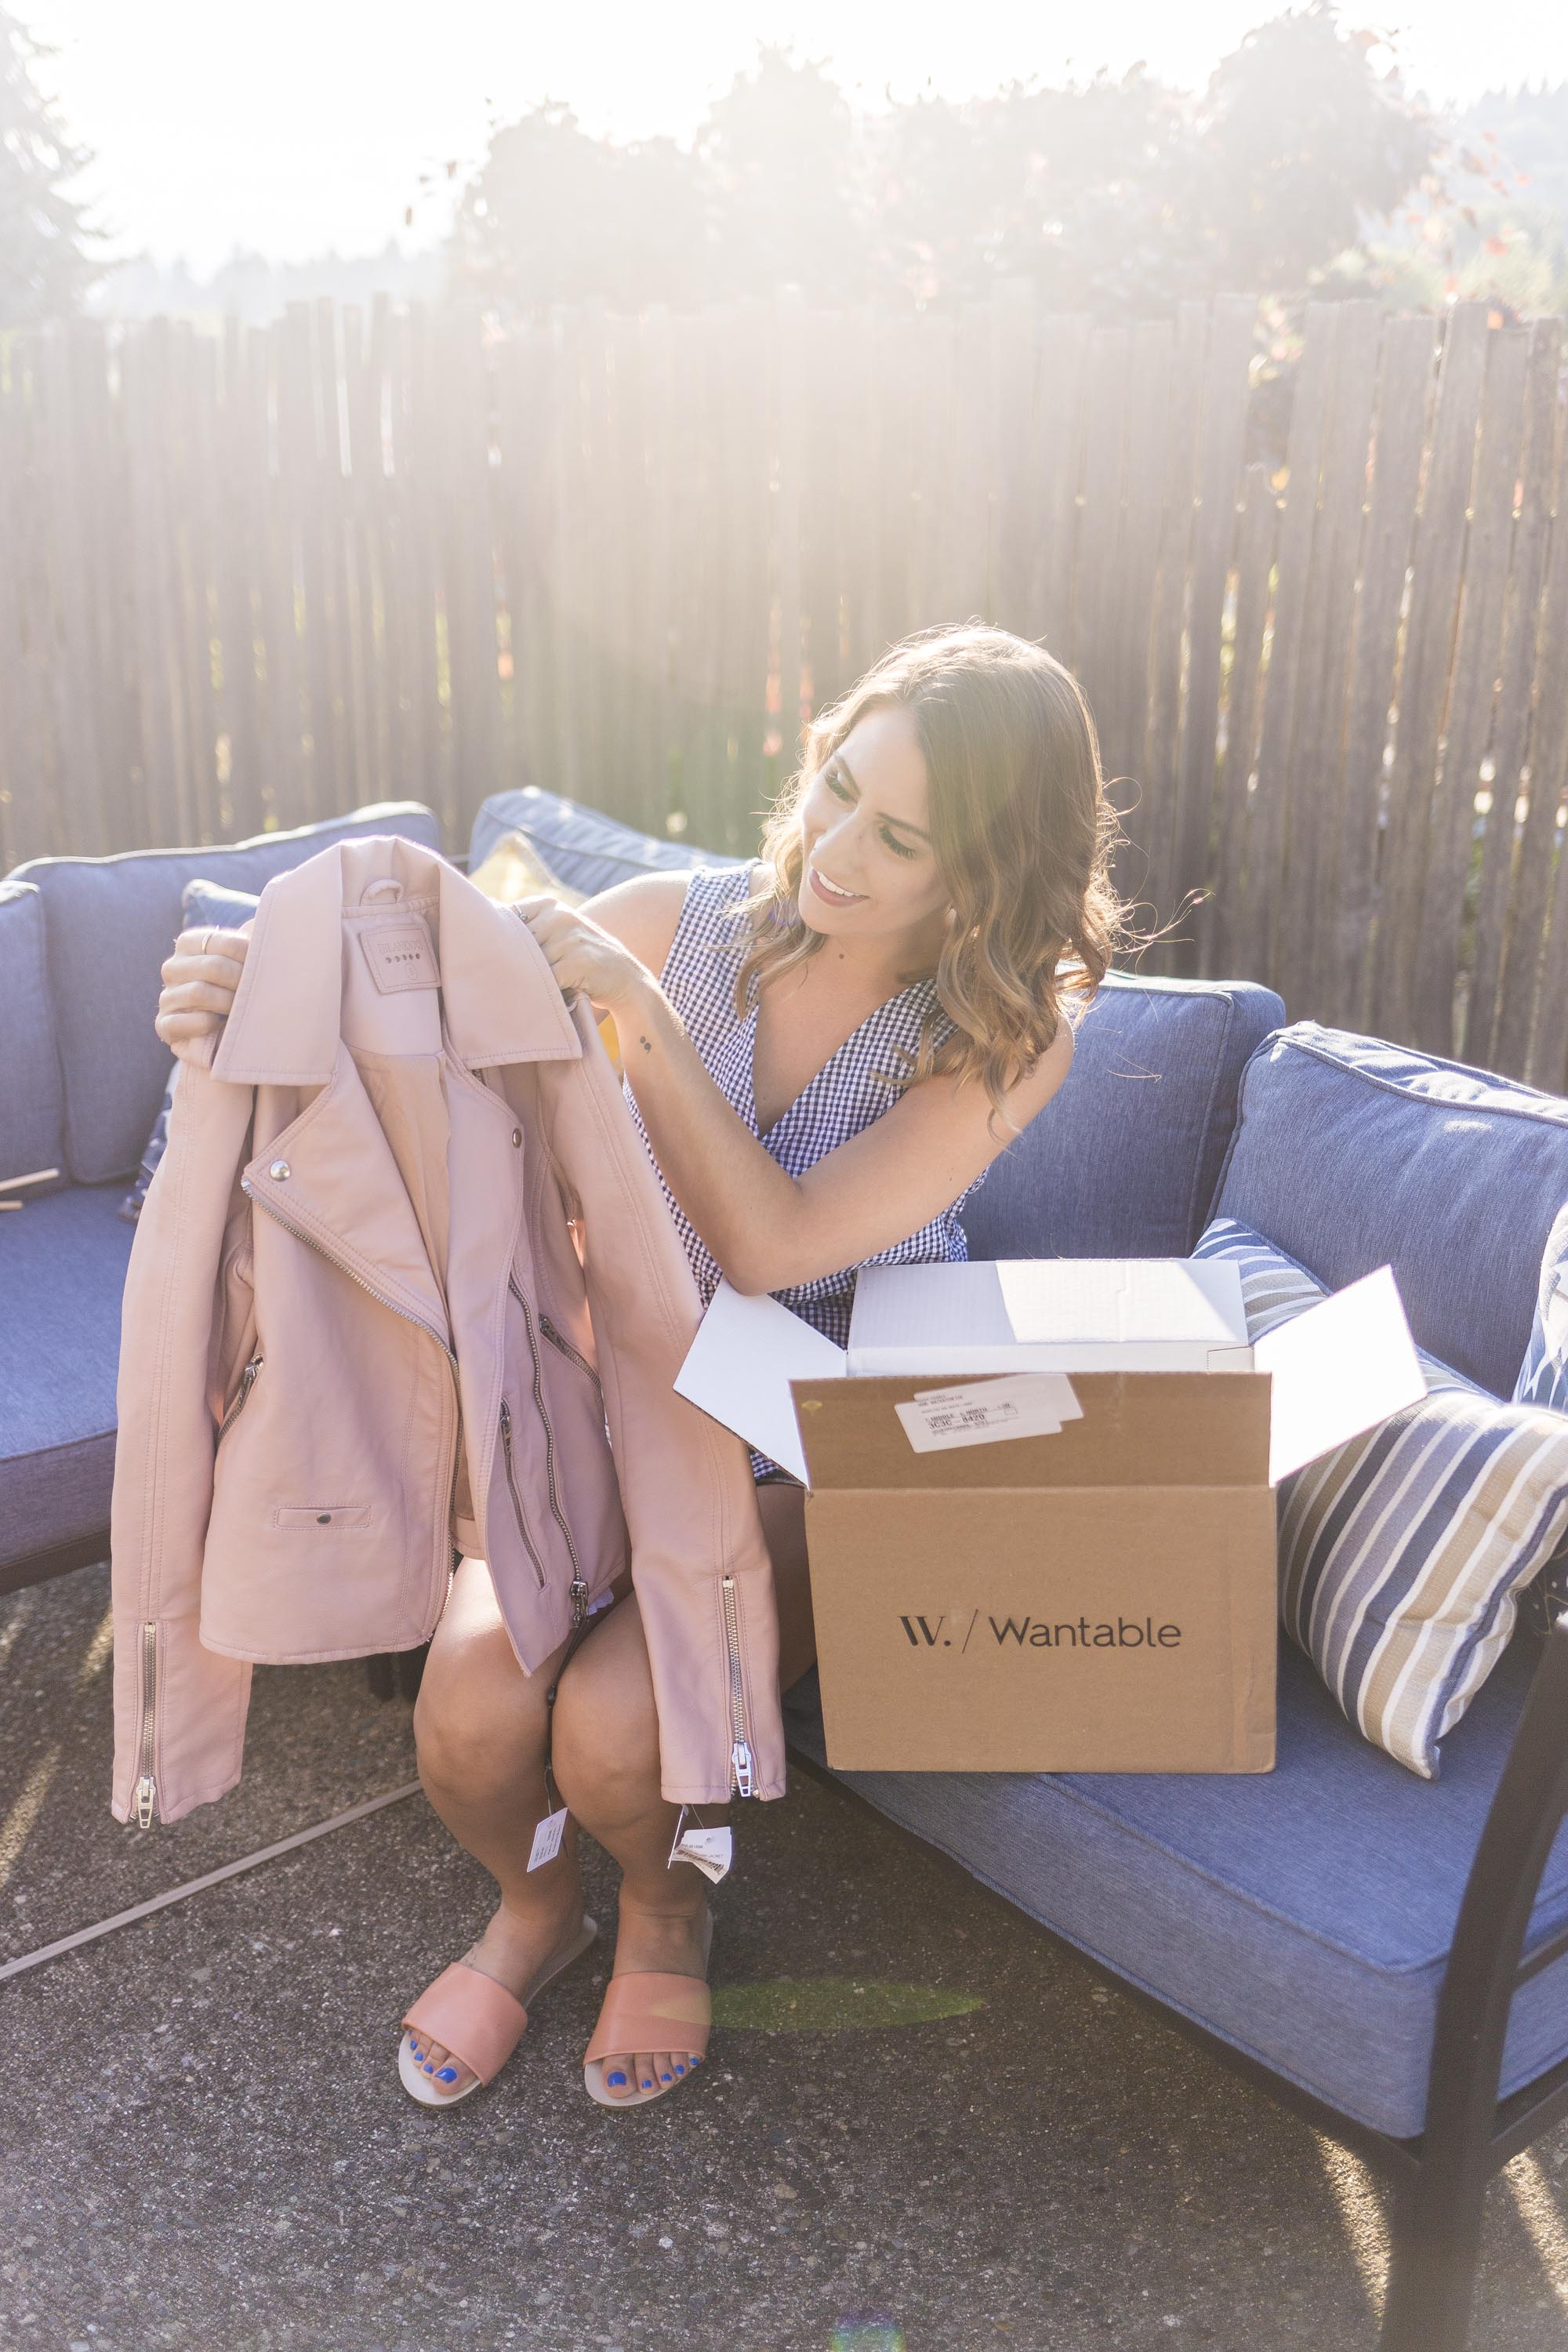 pink jacket, wantable, style box service